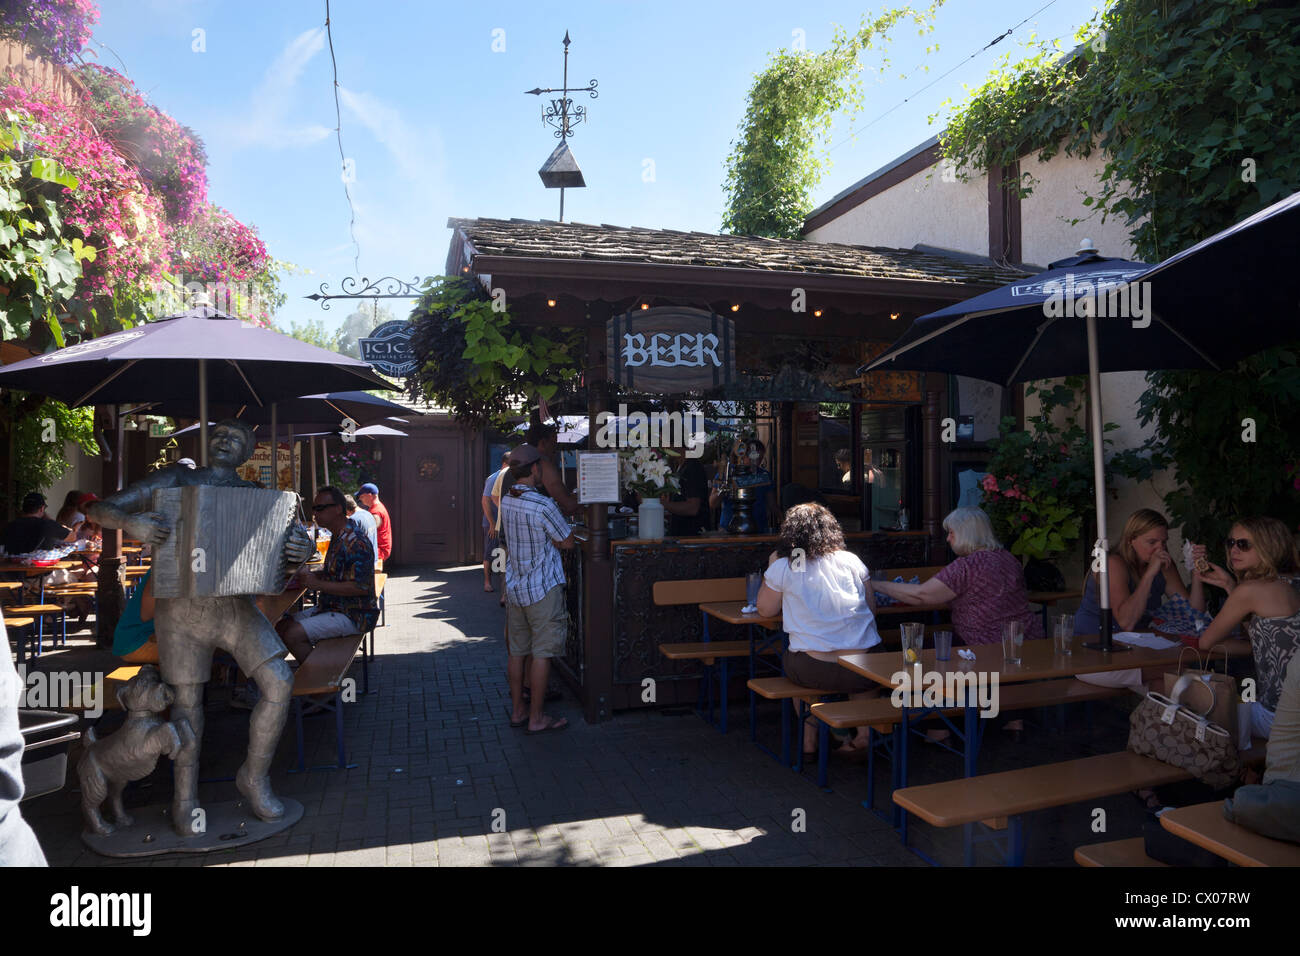 Beer garden in Leavenworth, Washington, USA. - Stock Image